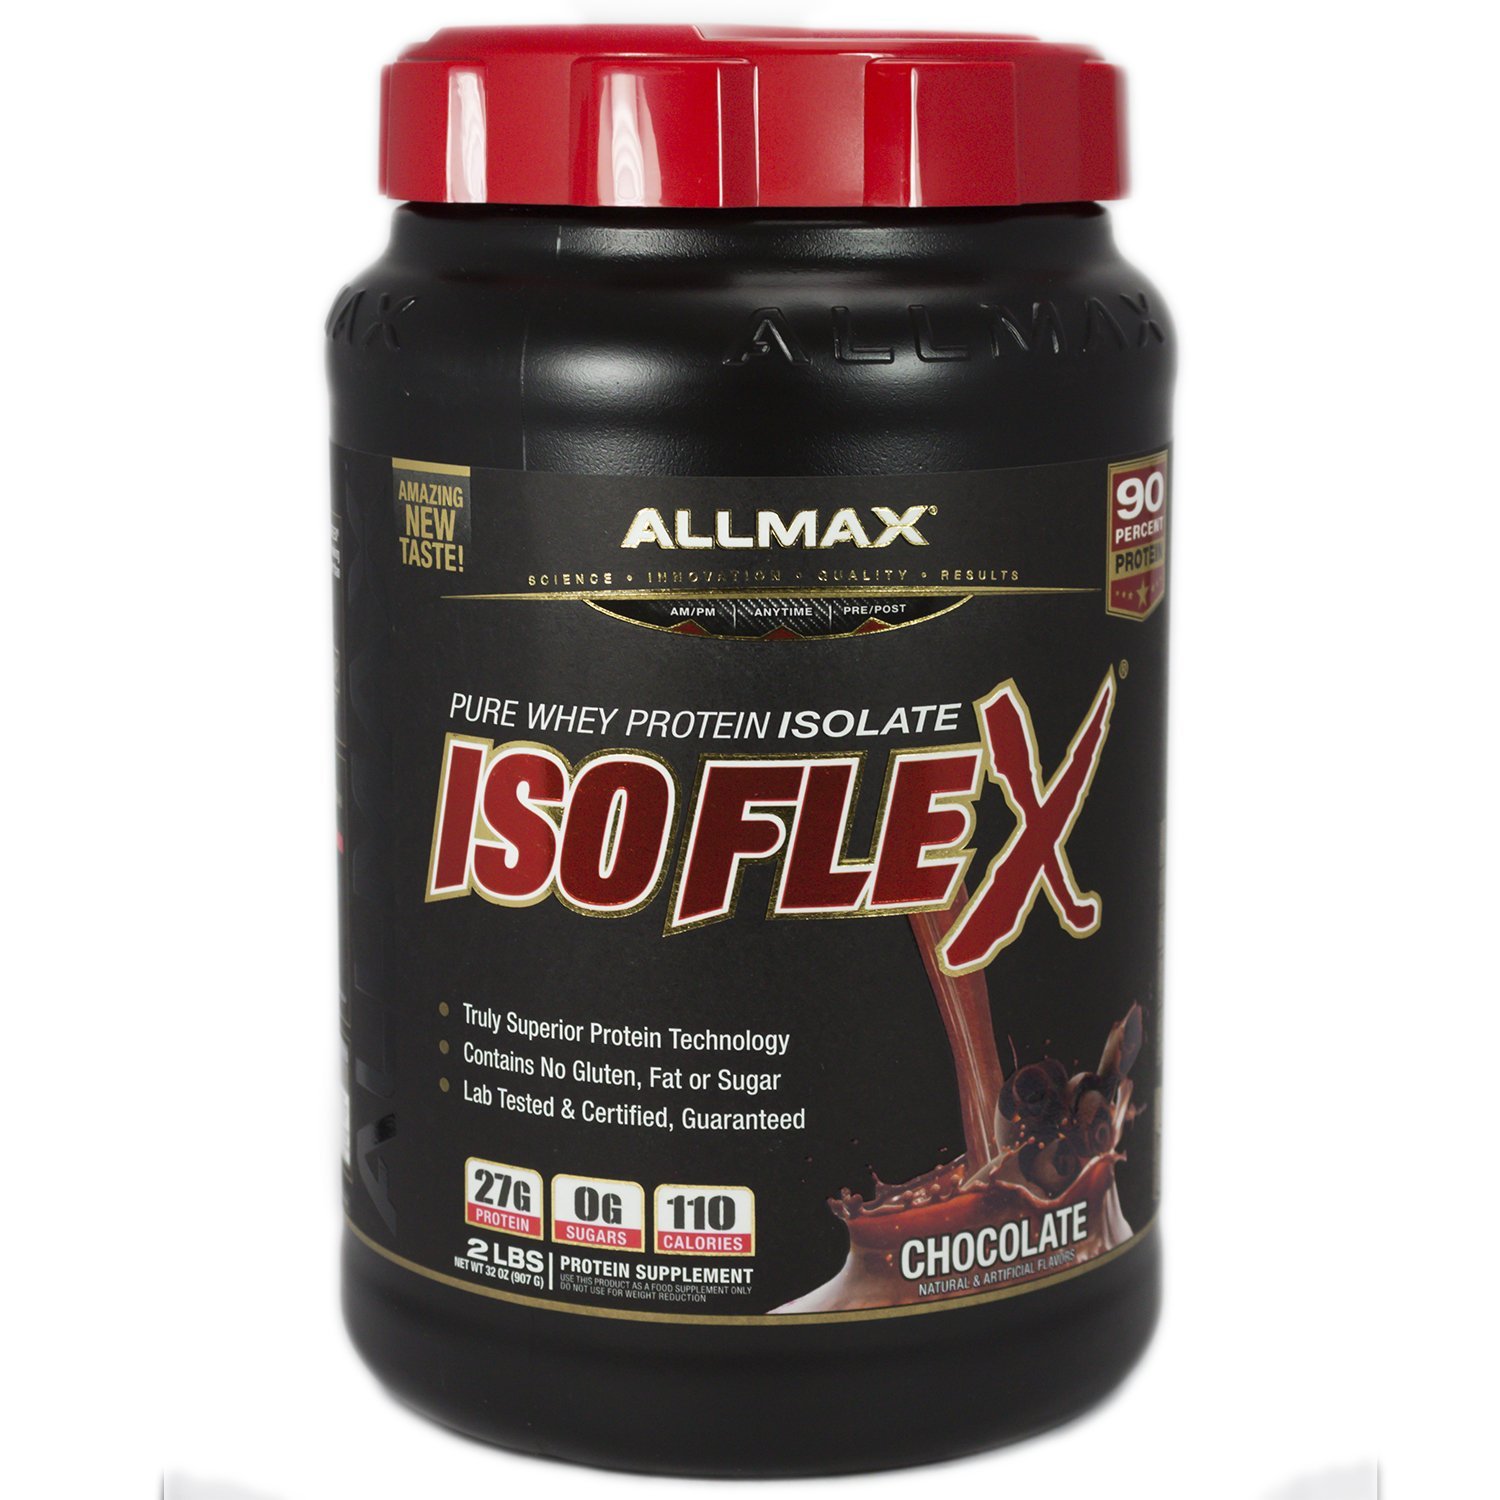 ALLMAX Nutrition Isoflex 100 Ultra-Pure Whey Protein Isolate WPI Ion-Charged Particle Filtration Chocolate 2 lbs 907 g